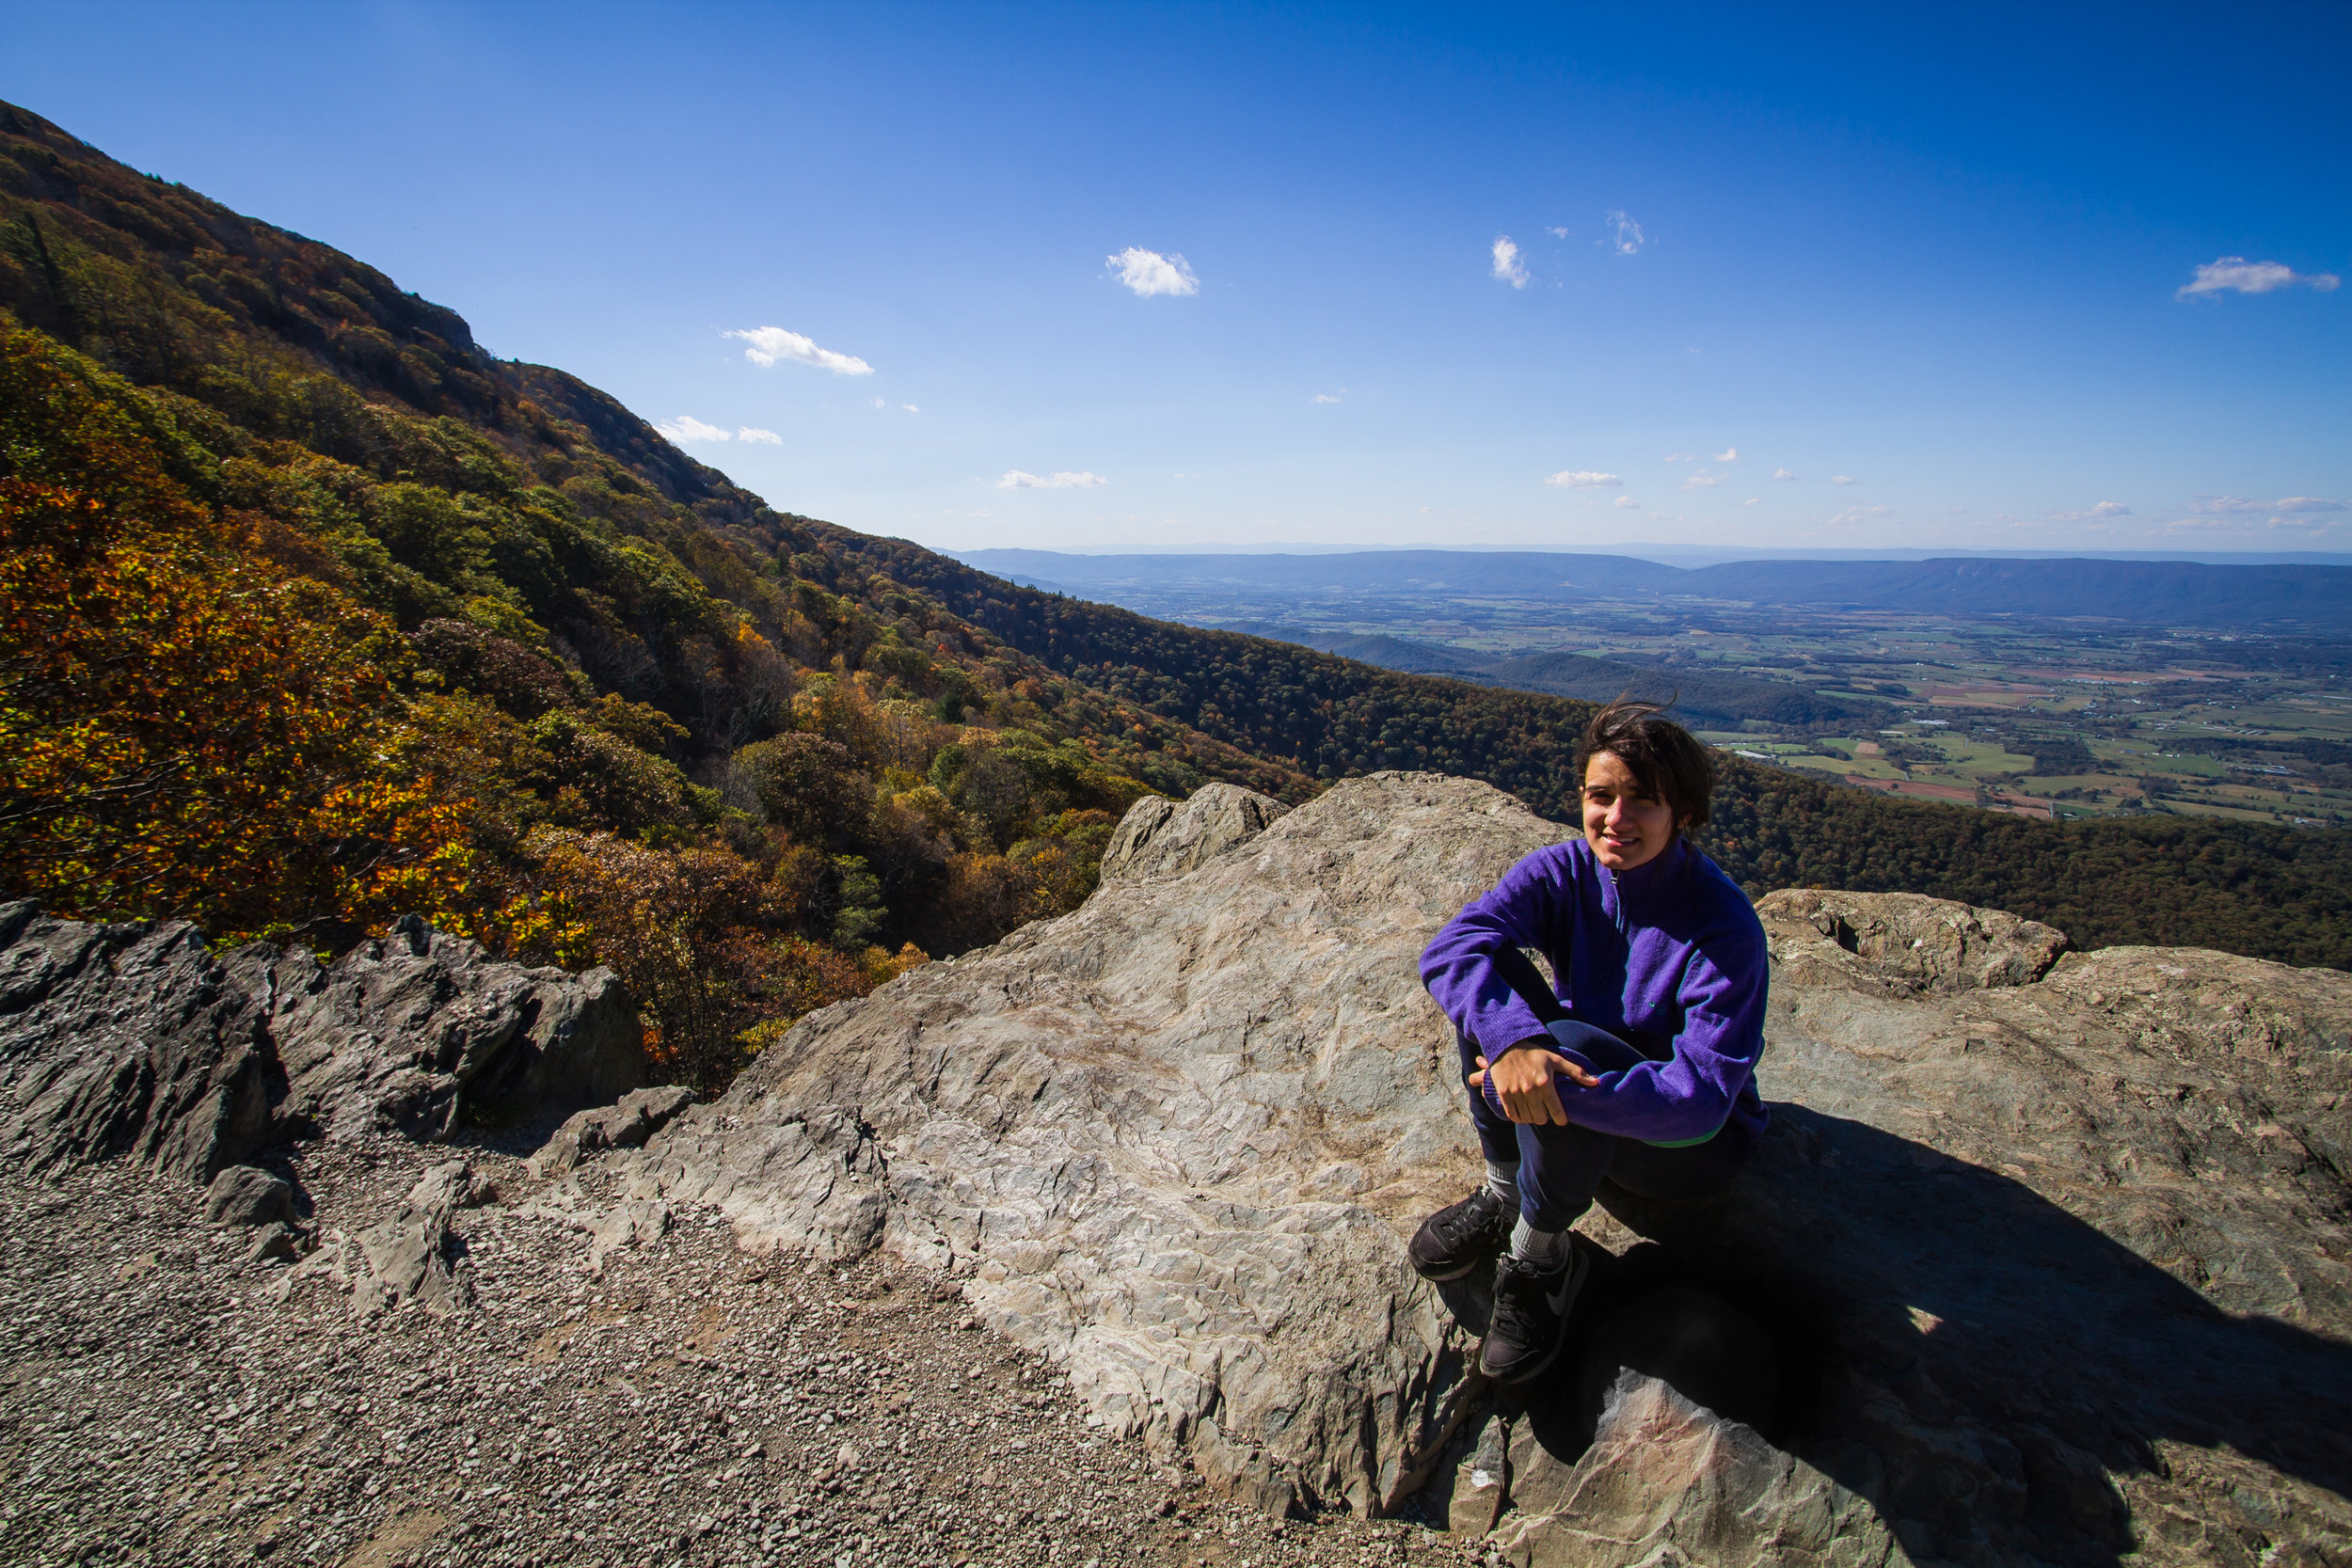 South view from Stoney Man Overlook, Shenandoah